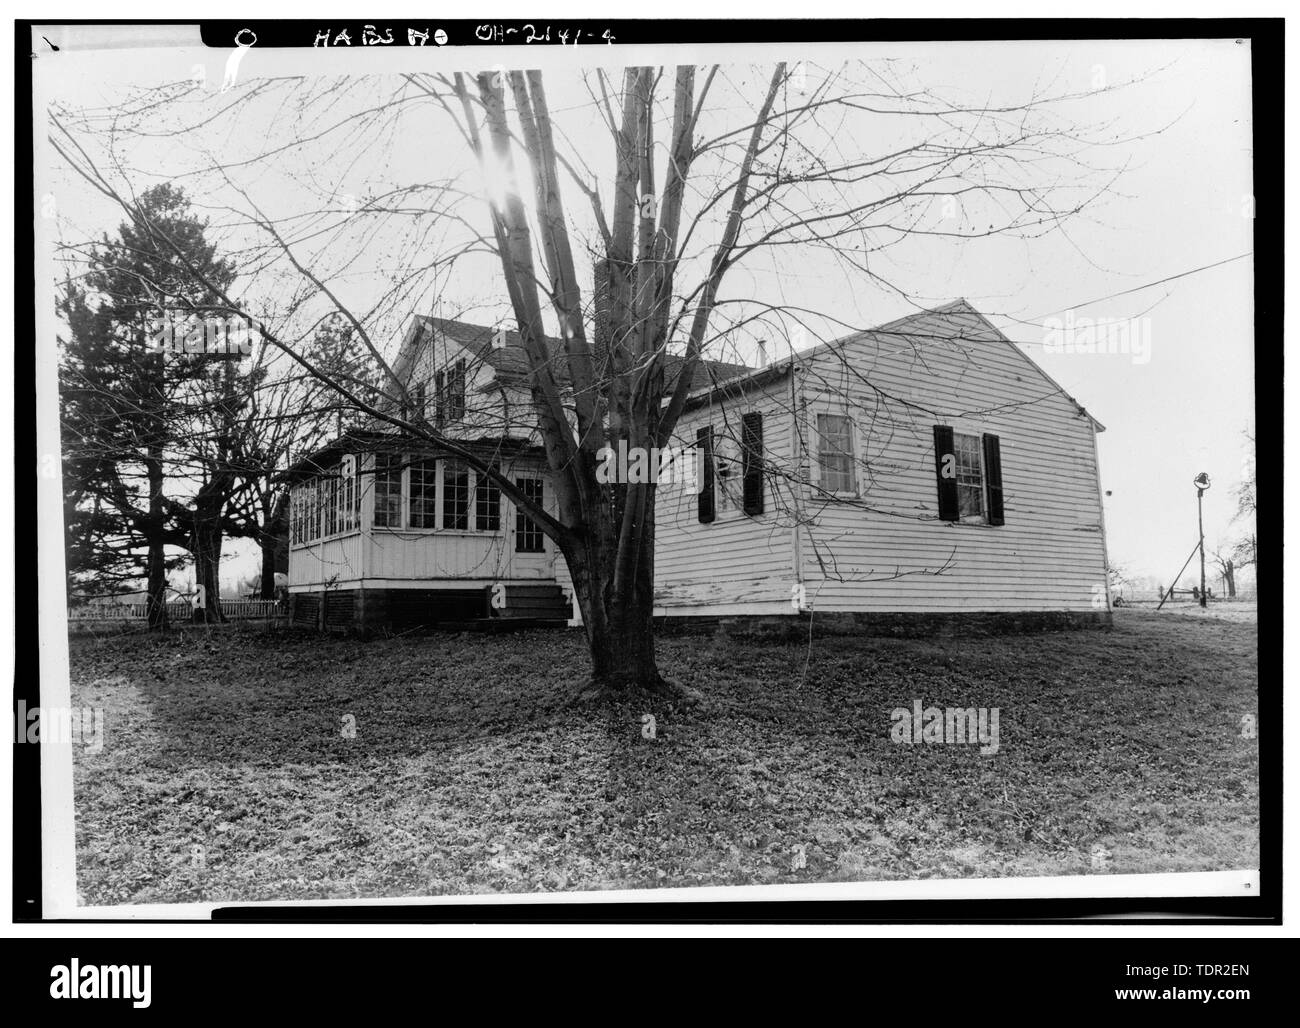 Photograph of photograph by Steckel Photographers, February 10, 1973. Original print in Field Records. NORTHEAST ELEVATION. - Abbott-Page House, Mason Road, State Route 13 vicinity, Milan, Erie County, OH - Stock Image